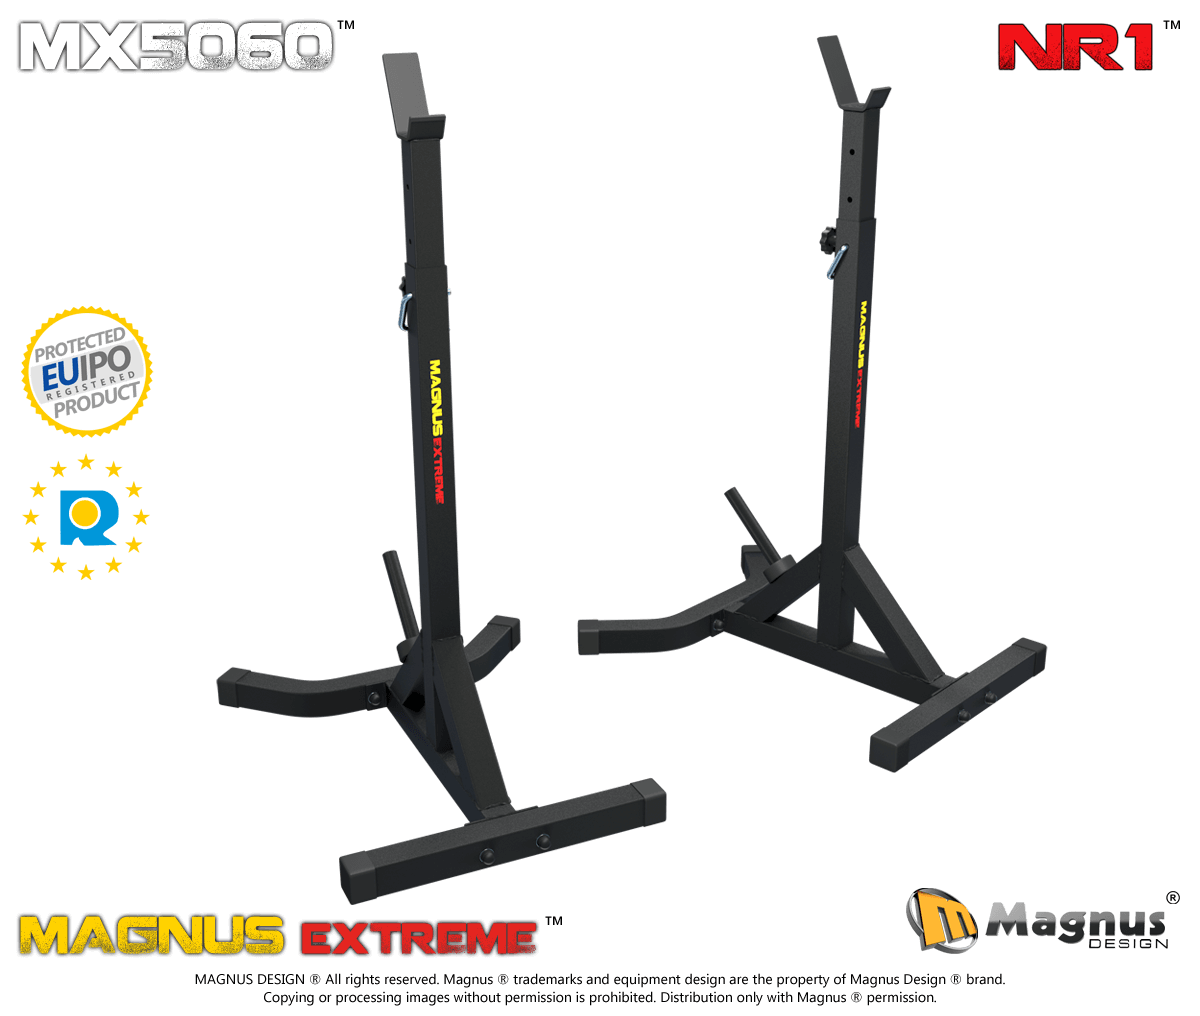 Training stands for barbell Magnus Extreme MX5060